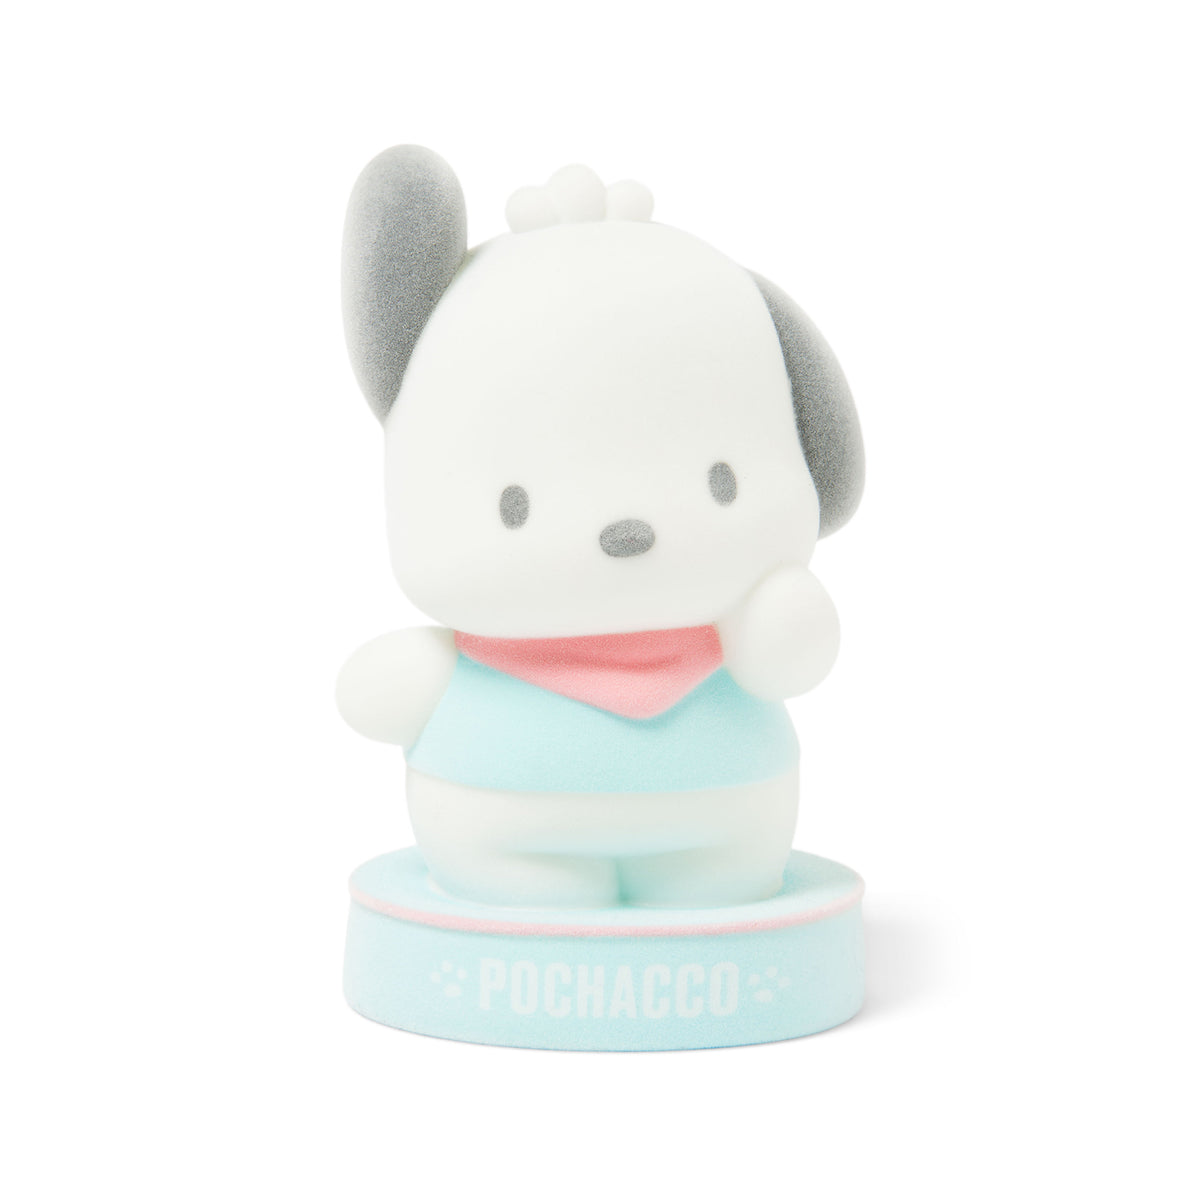 Pochacco Flocked Figure Coin Bank